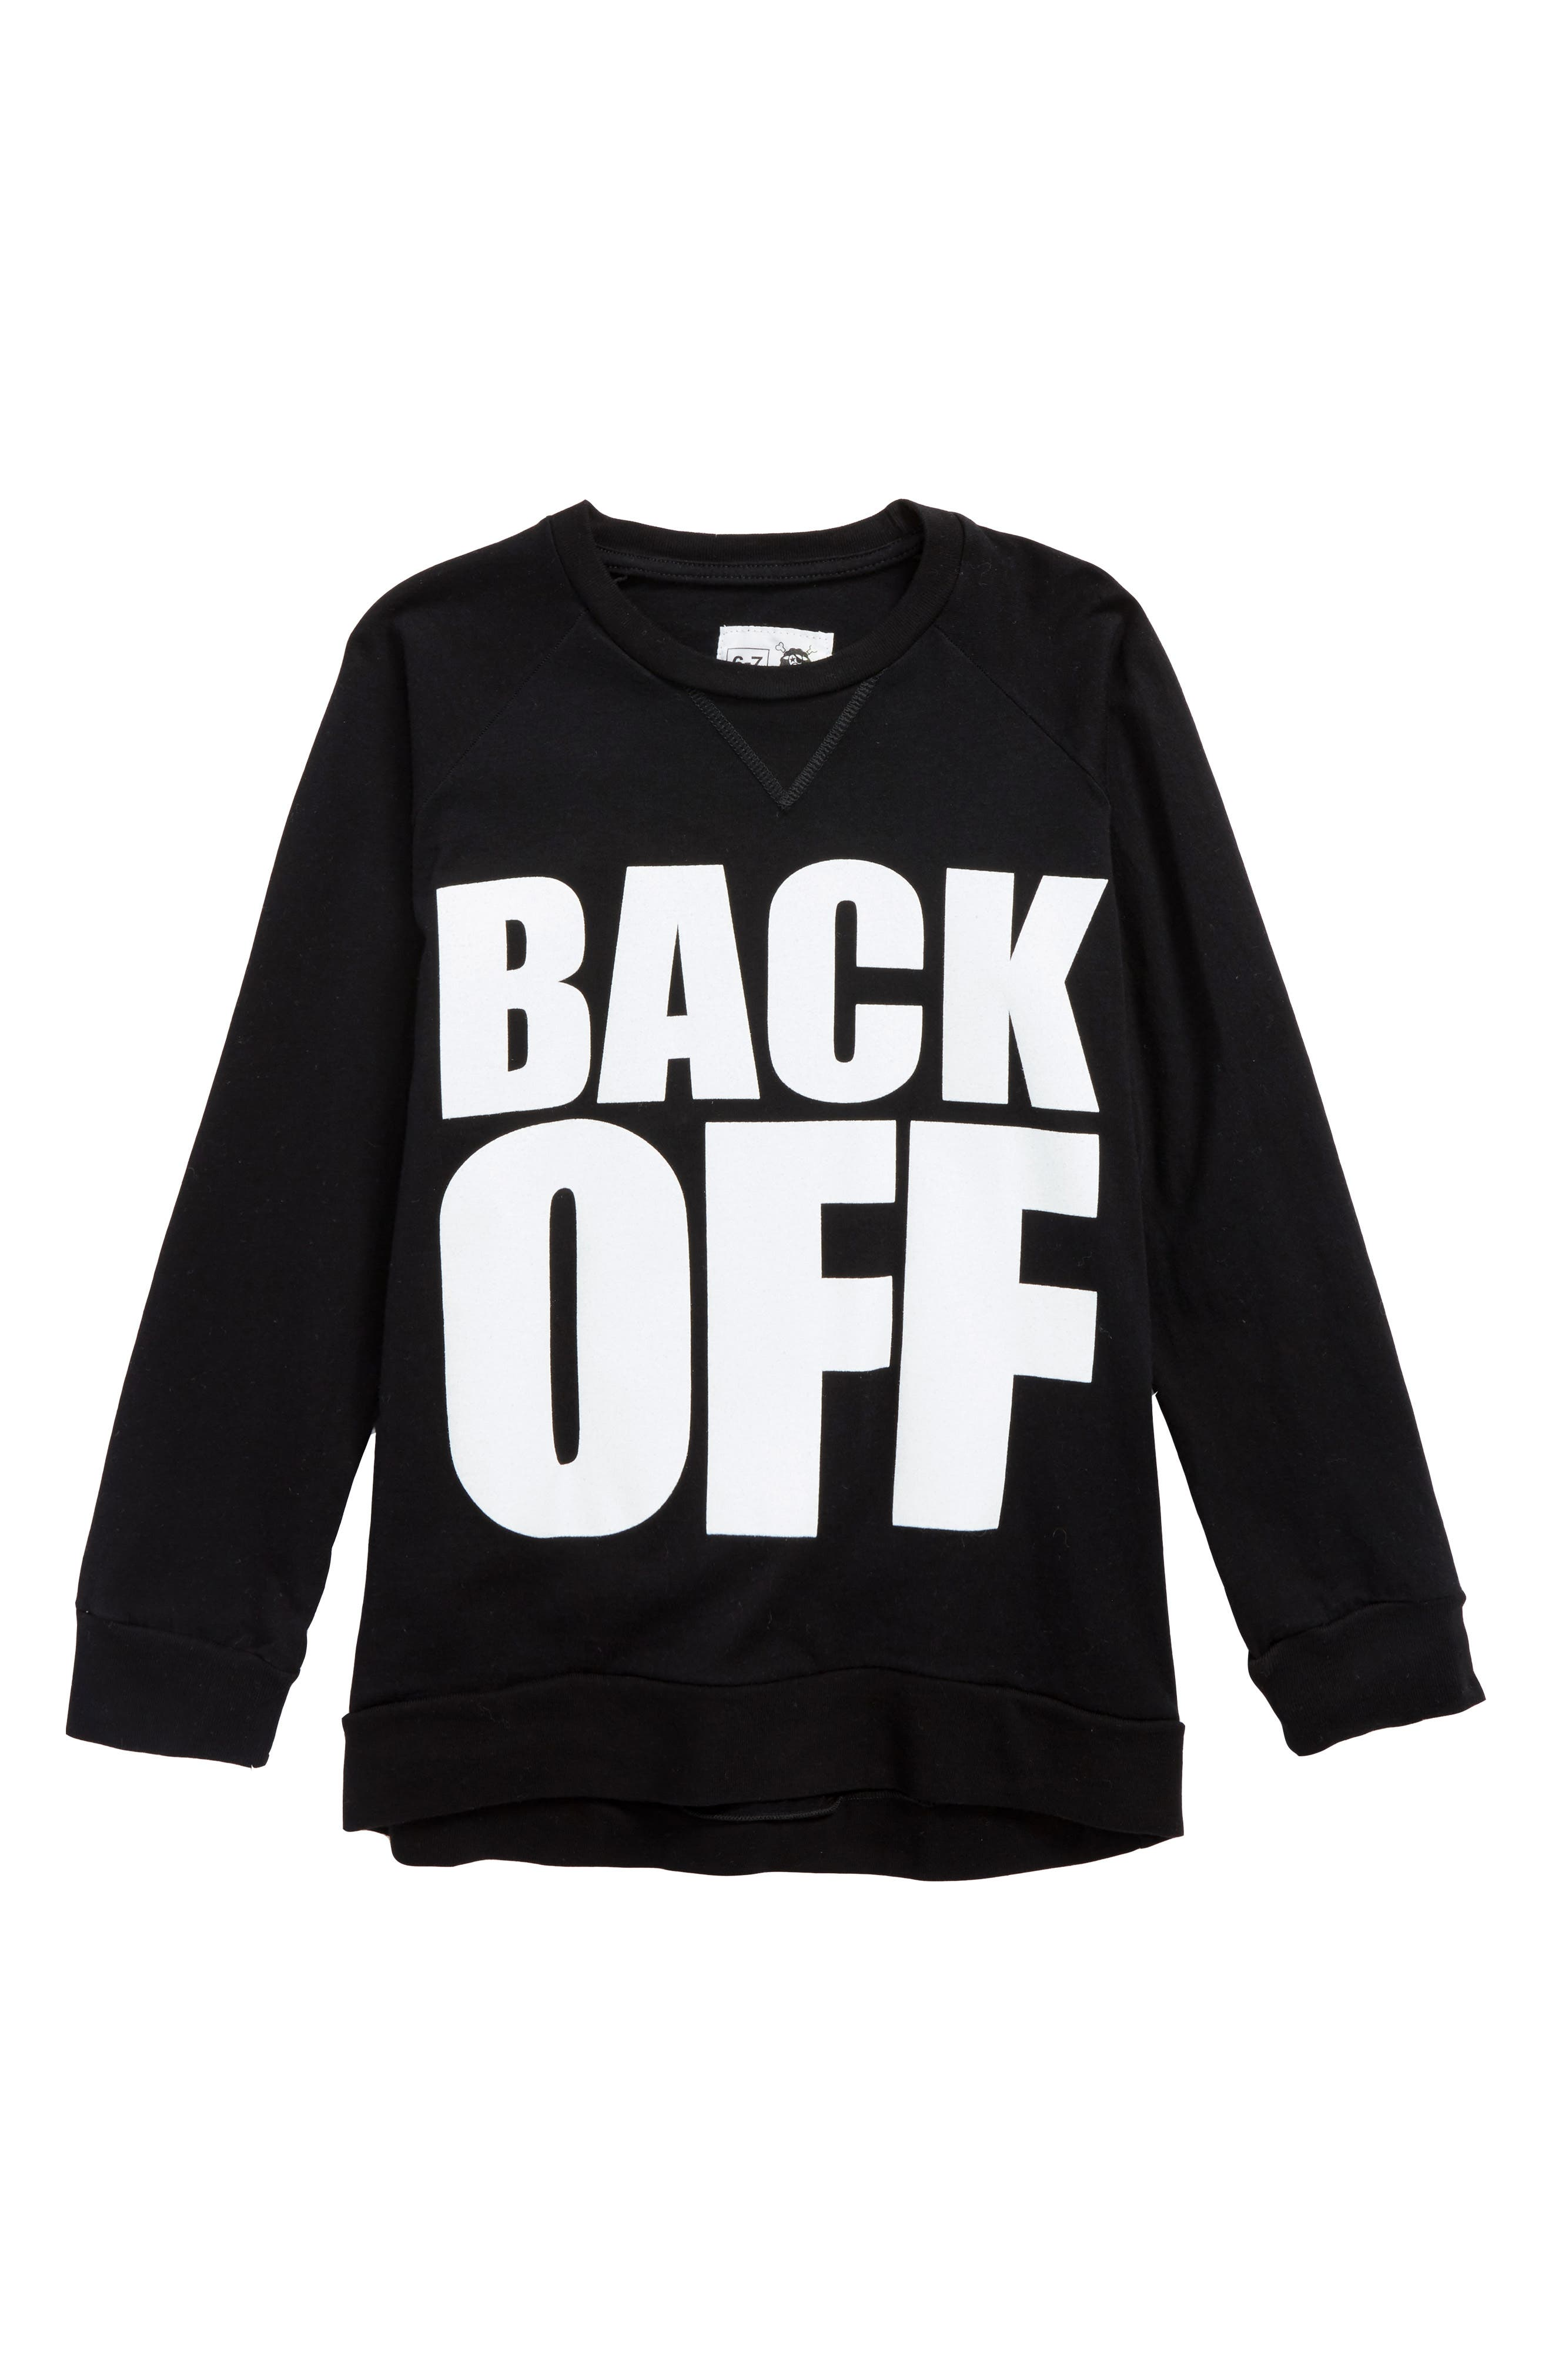 Back Off Graphic T-Shirt,                         Main,                         color, 001